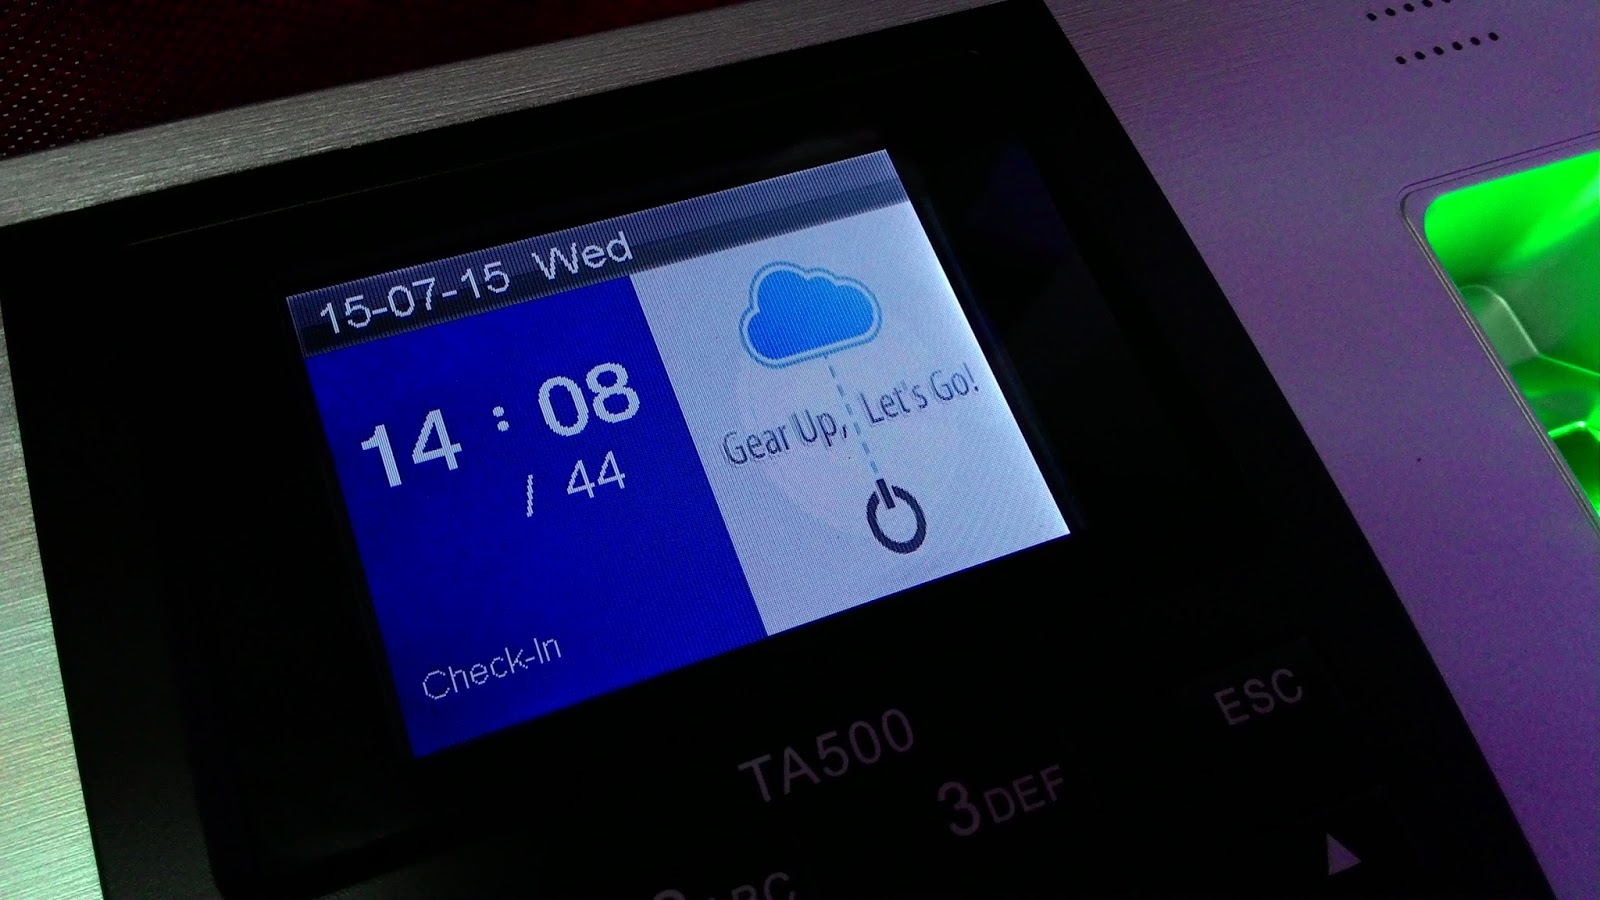 How to Change Background Image in TA500 | FingerTec